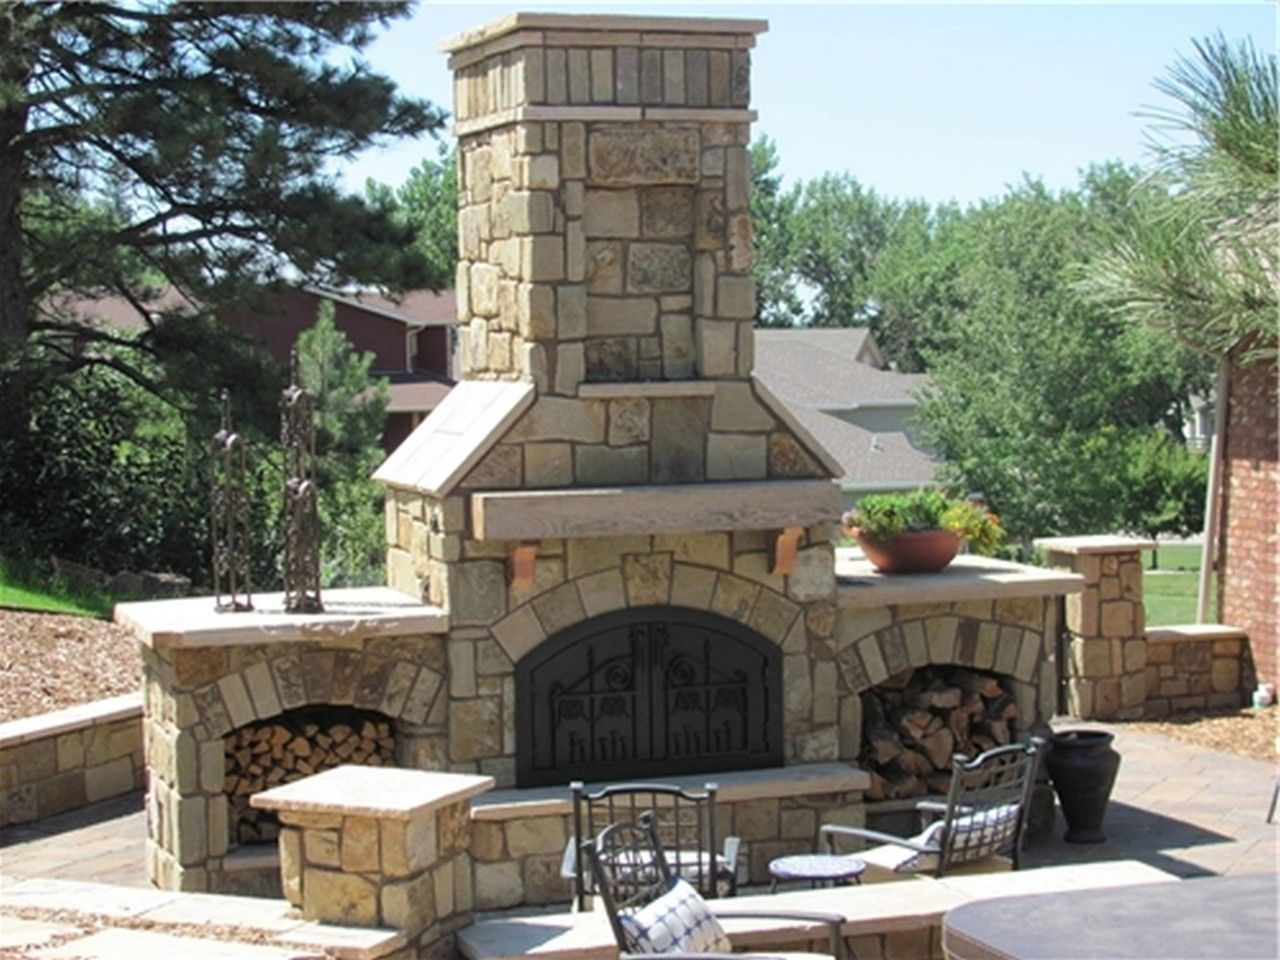 Pin By Charissa Knouff On Outdoor Projects Outdoor Stone Fireplaces Outdoor Fireplace Kits Outdoor Propane Fireplace